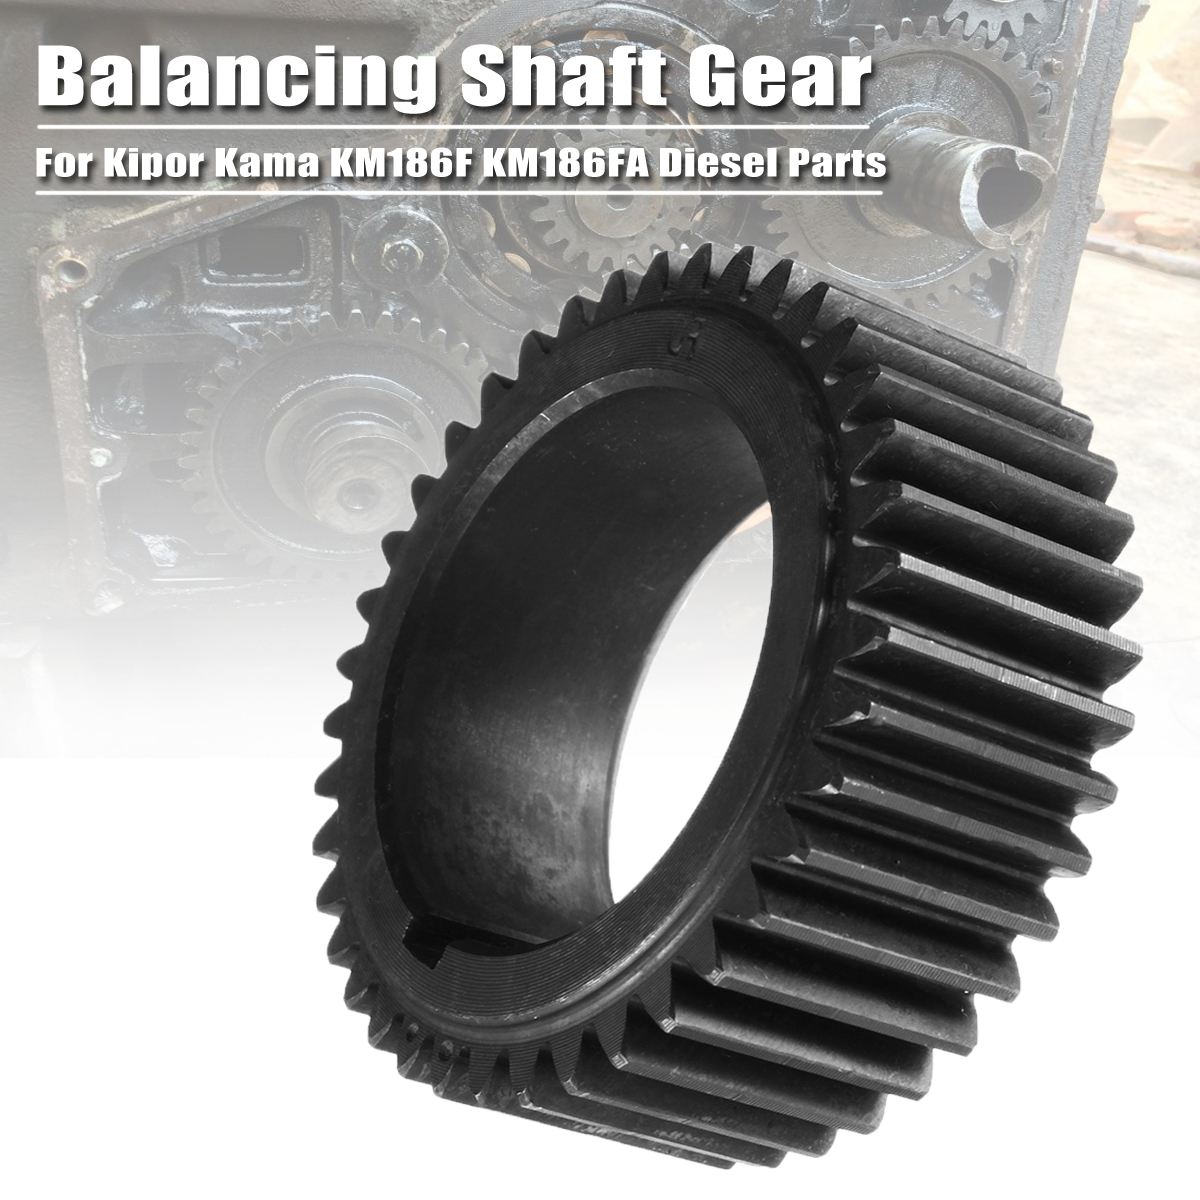 1Pcs High Quality Balancing Shaft Gear Suitable For Kipor Kama KM186F KM186FA For Diesel Generator Parts